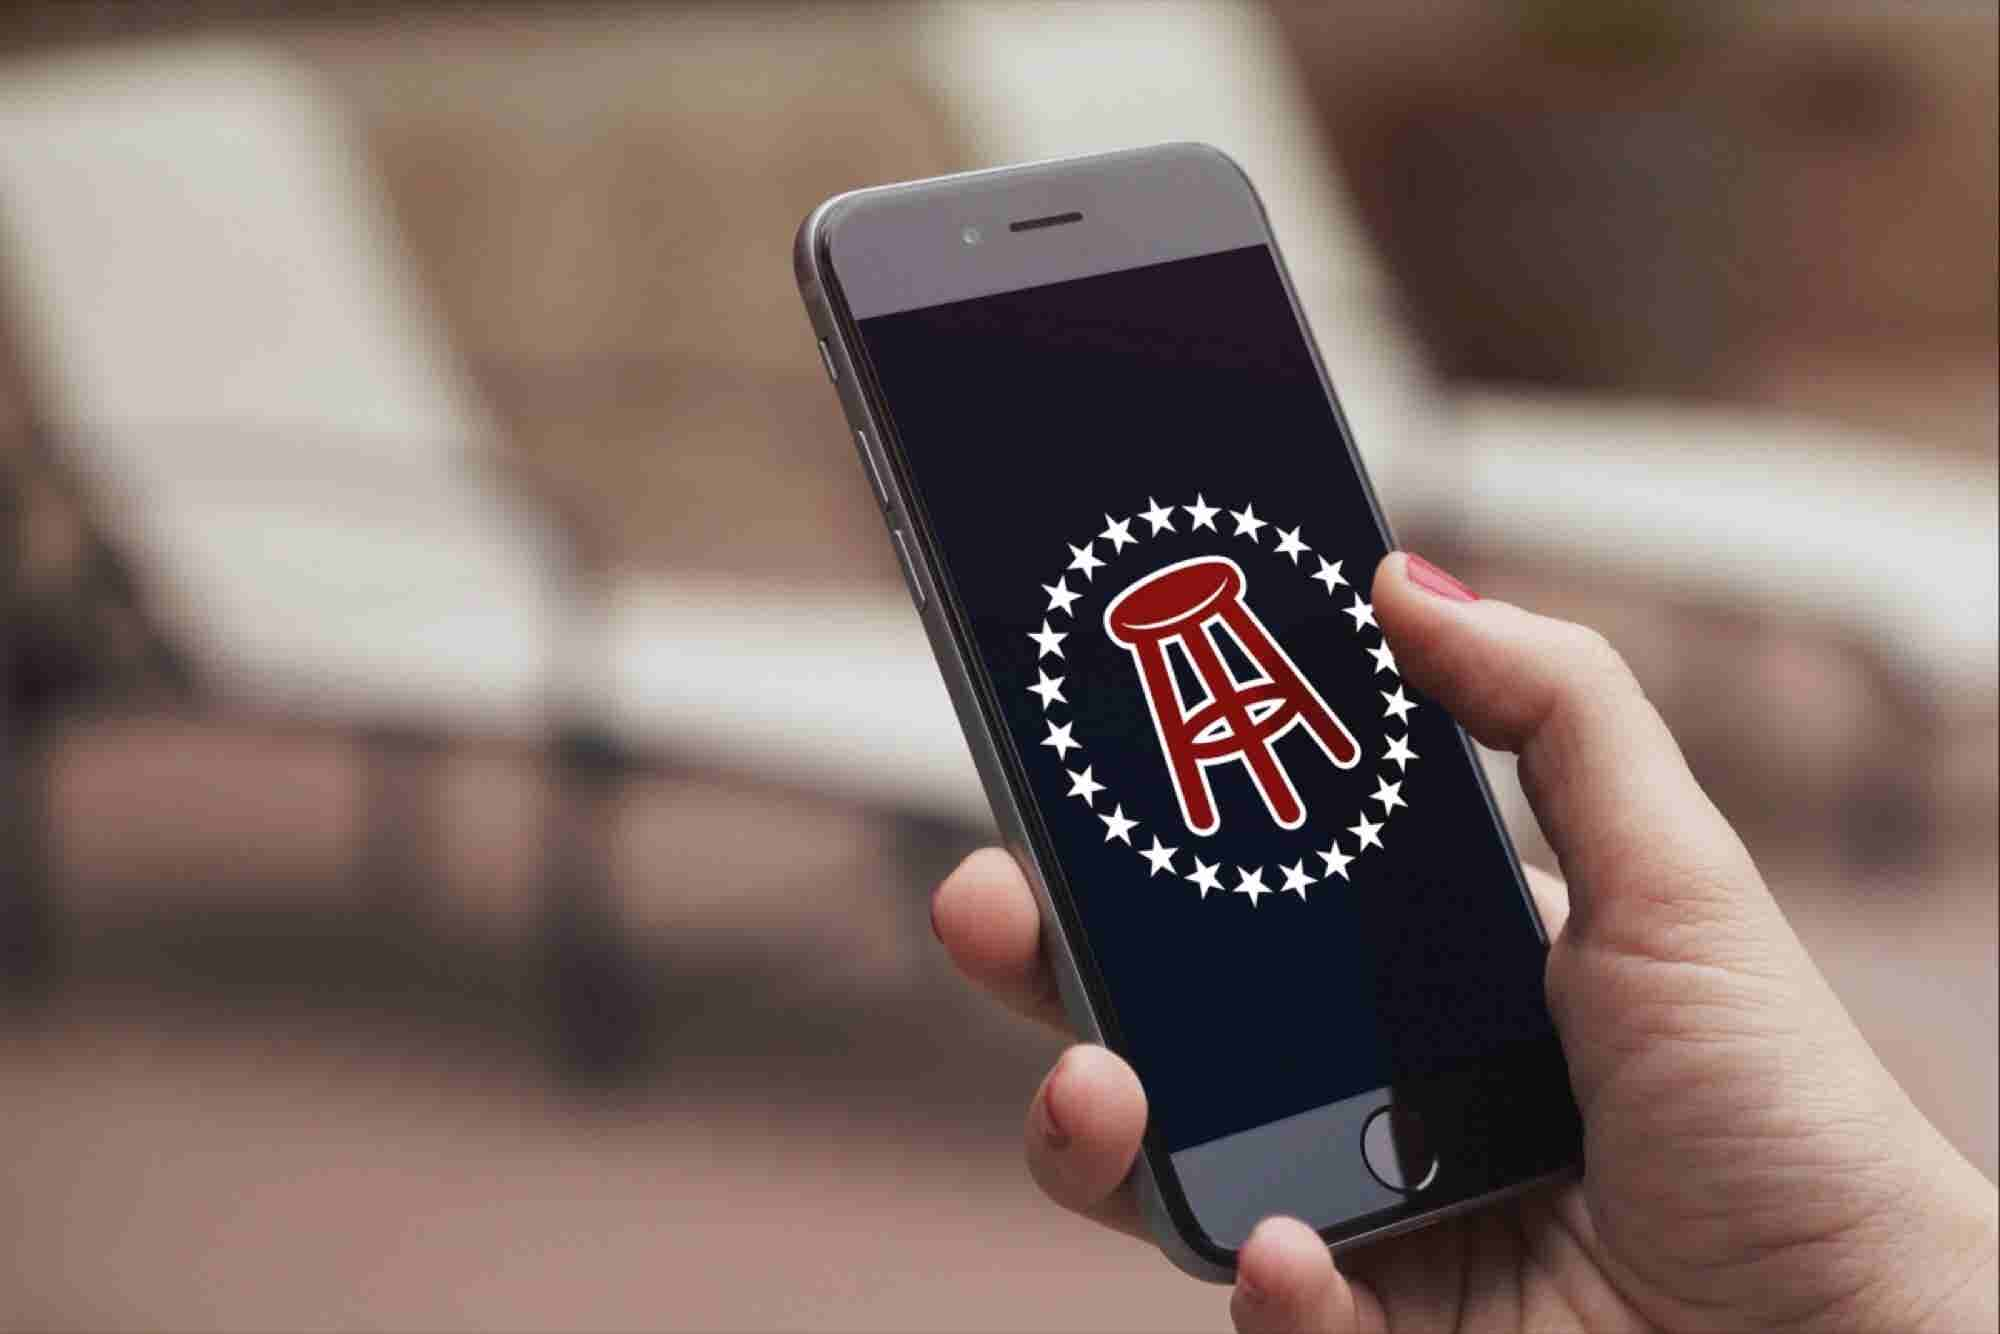 4 Valuable Takeaways From the Sale of 'Barstool Sports'